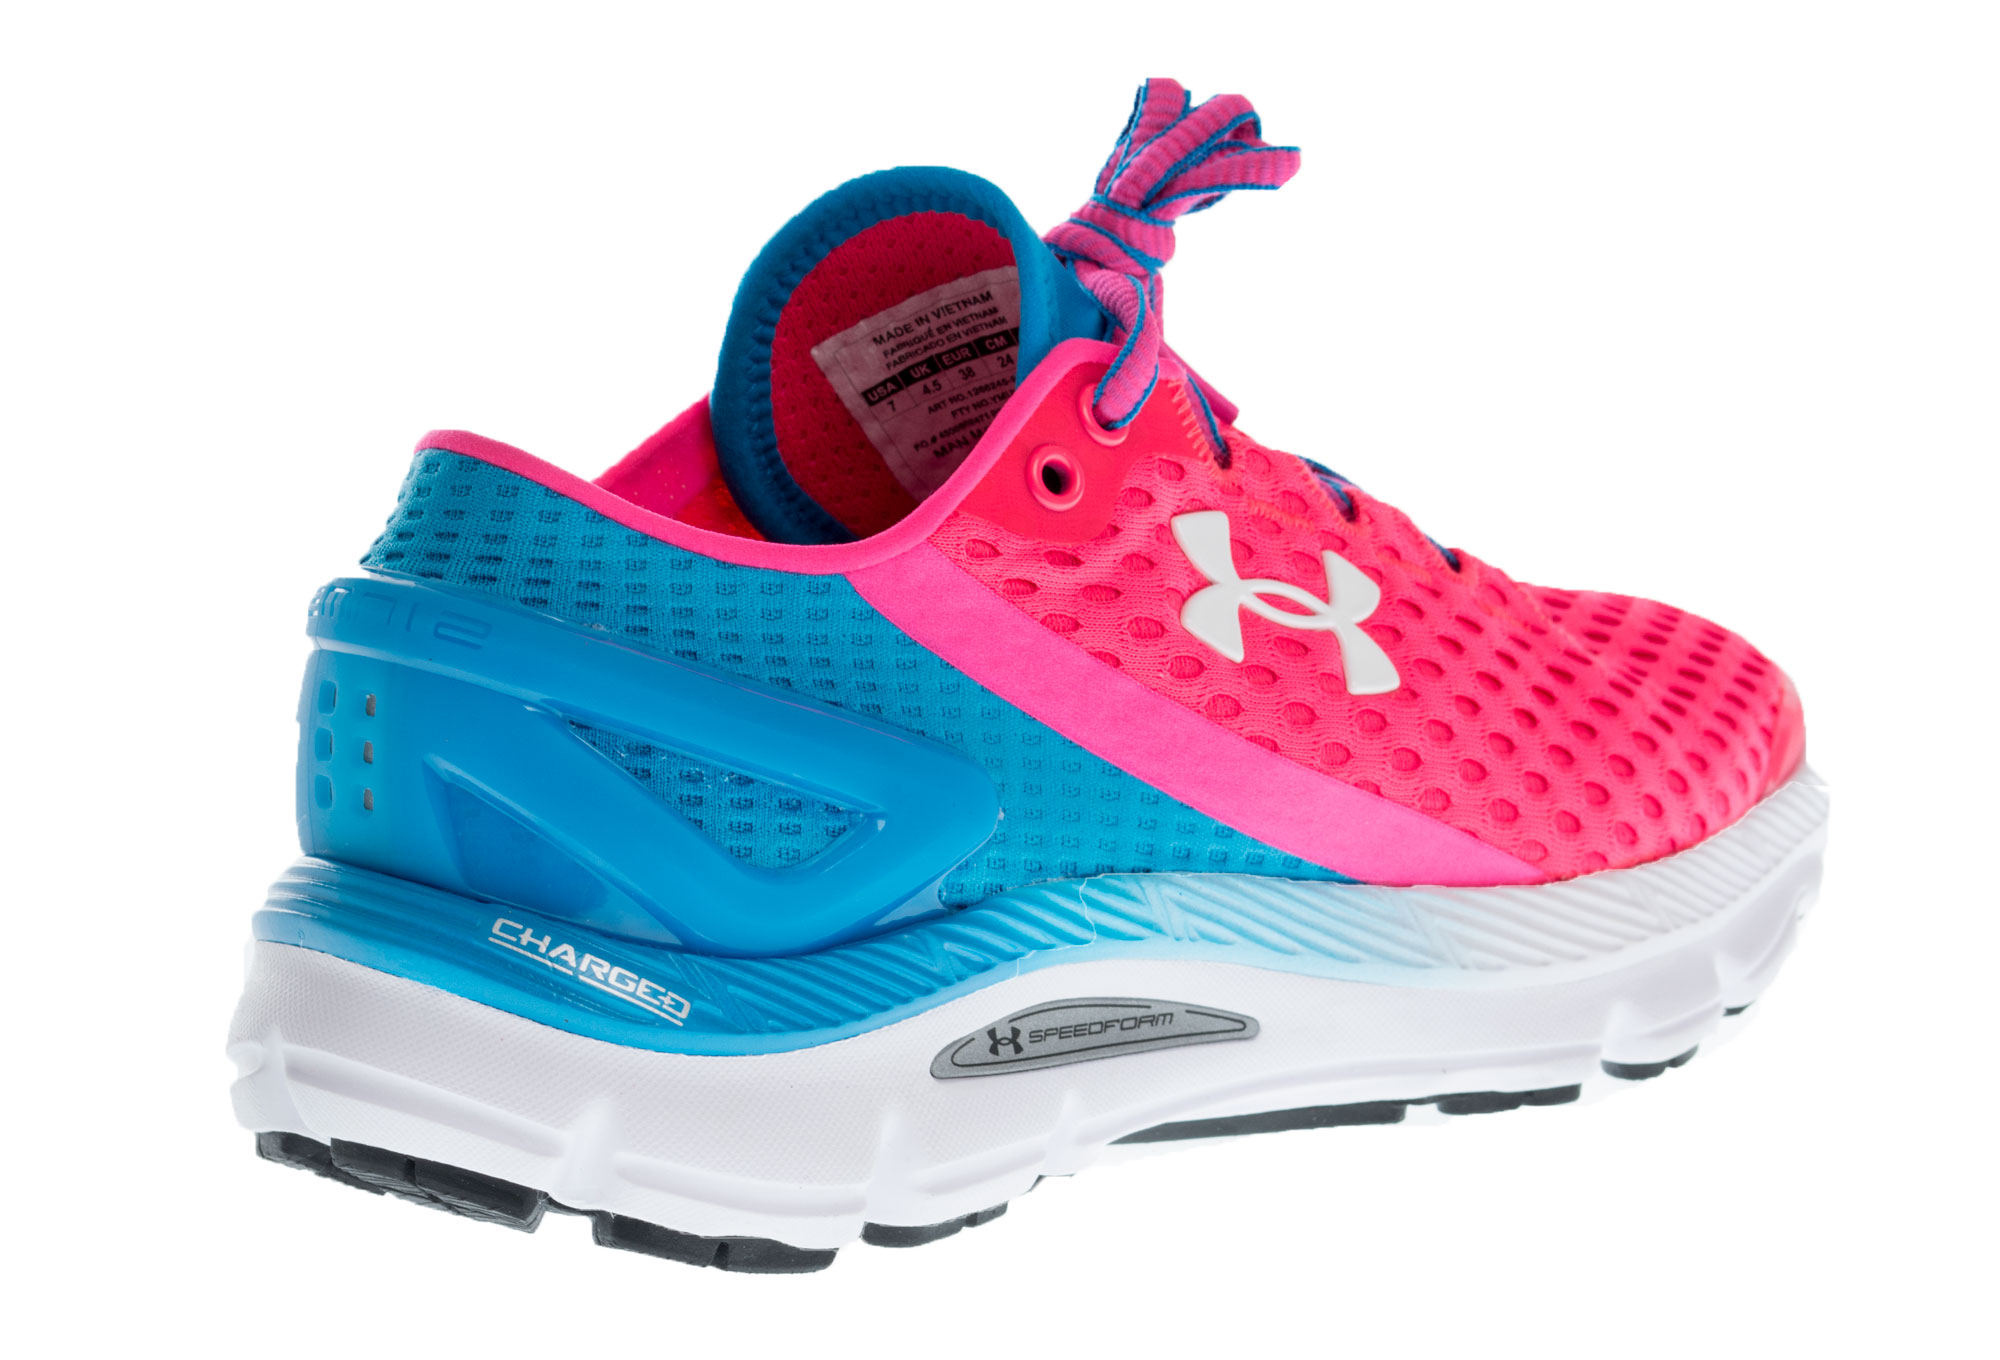 newest 20eb9 3274f UNDER ARMOUR SPEEDFORM GEMINI 2 Pair of Shoes Pink Blue Women